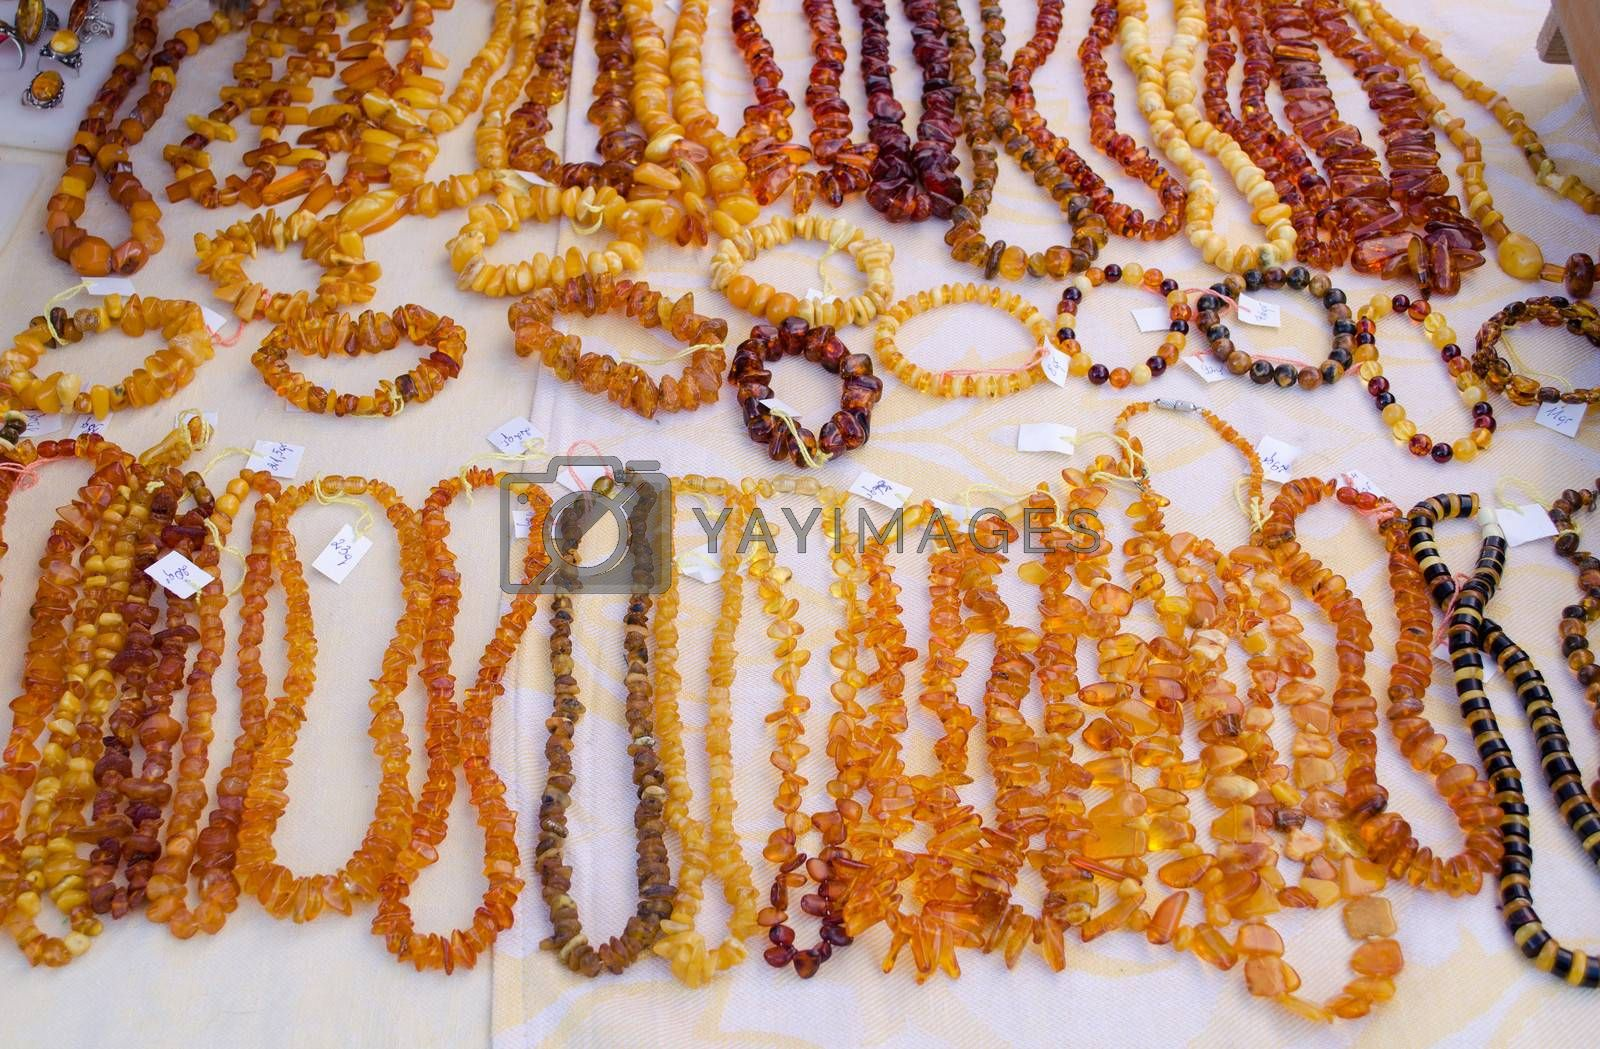 necklaces bracelet and other handmade jewelry. lithuanian national stone amber sold in city fair market.